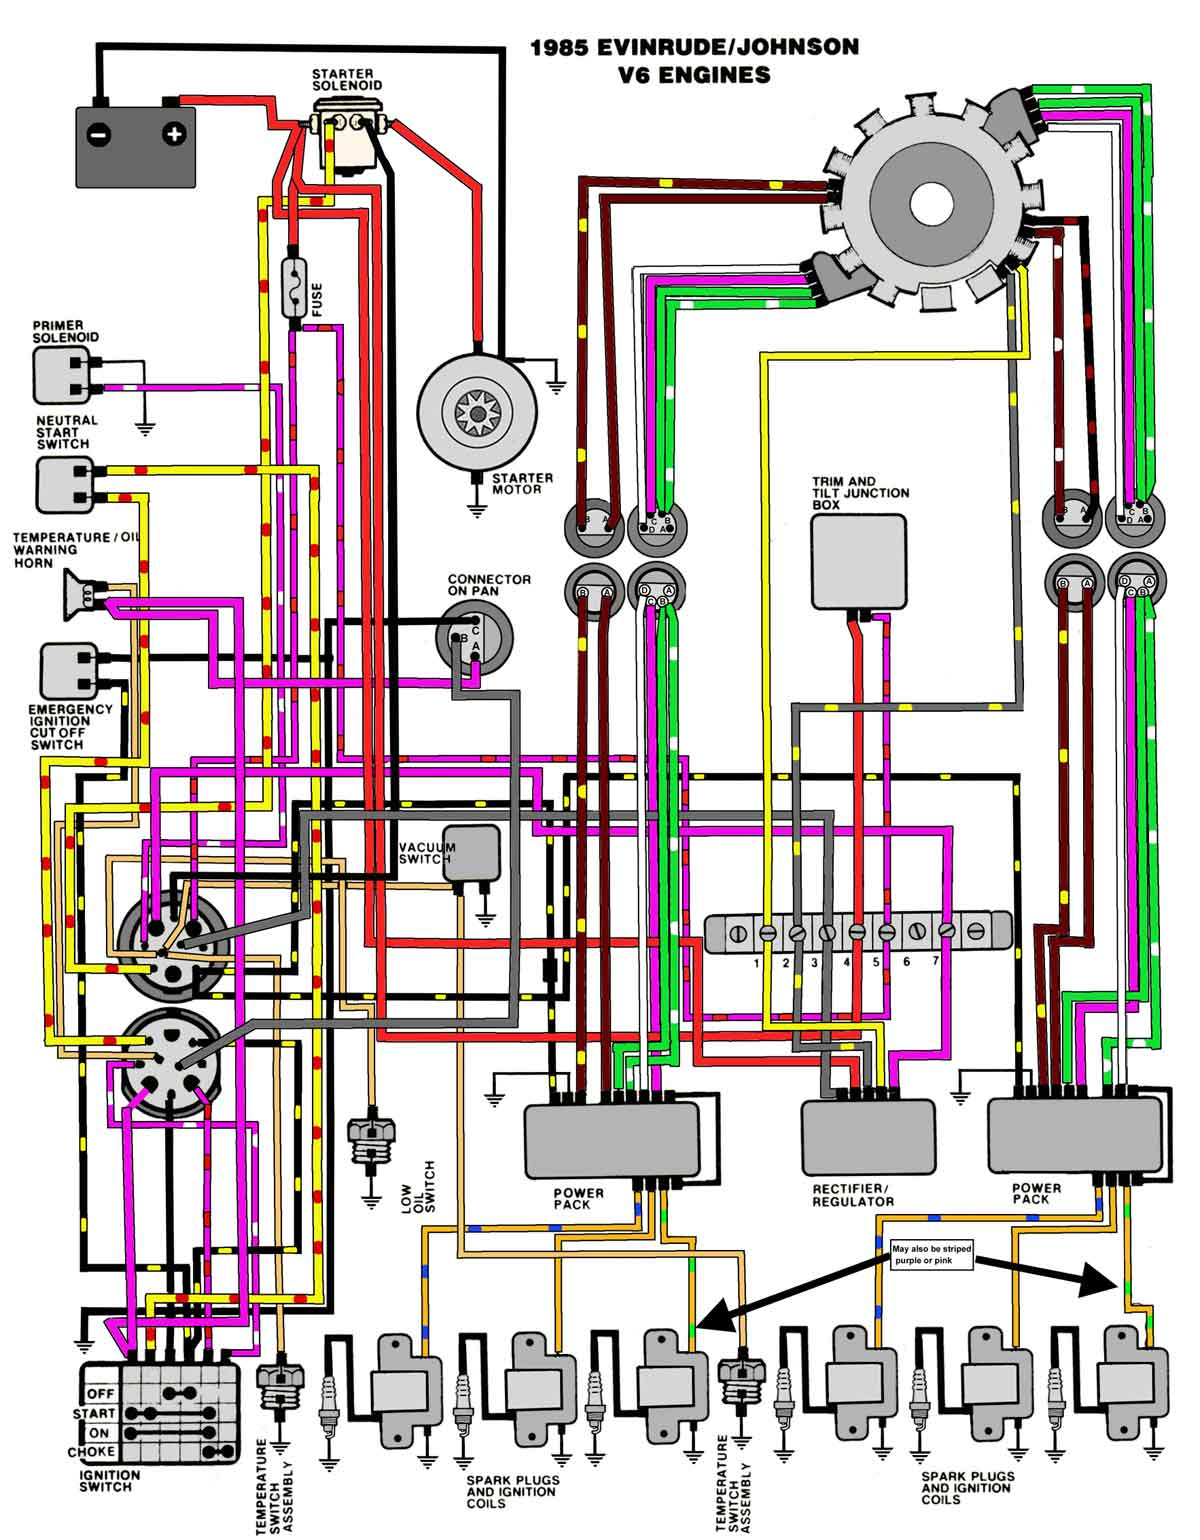 85_V6 mastertech marine evinrude johnson outboard wiring diagrams 70 HP Evinrude Schematic at aneh.co